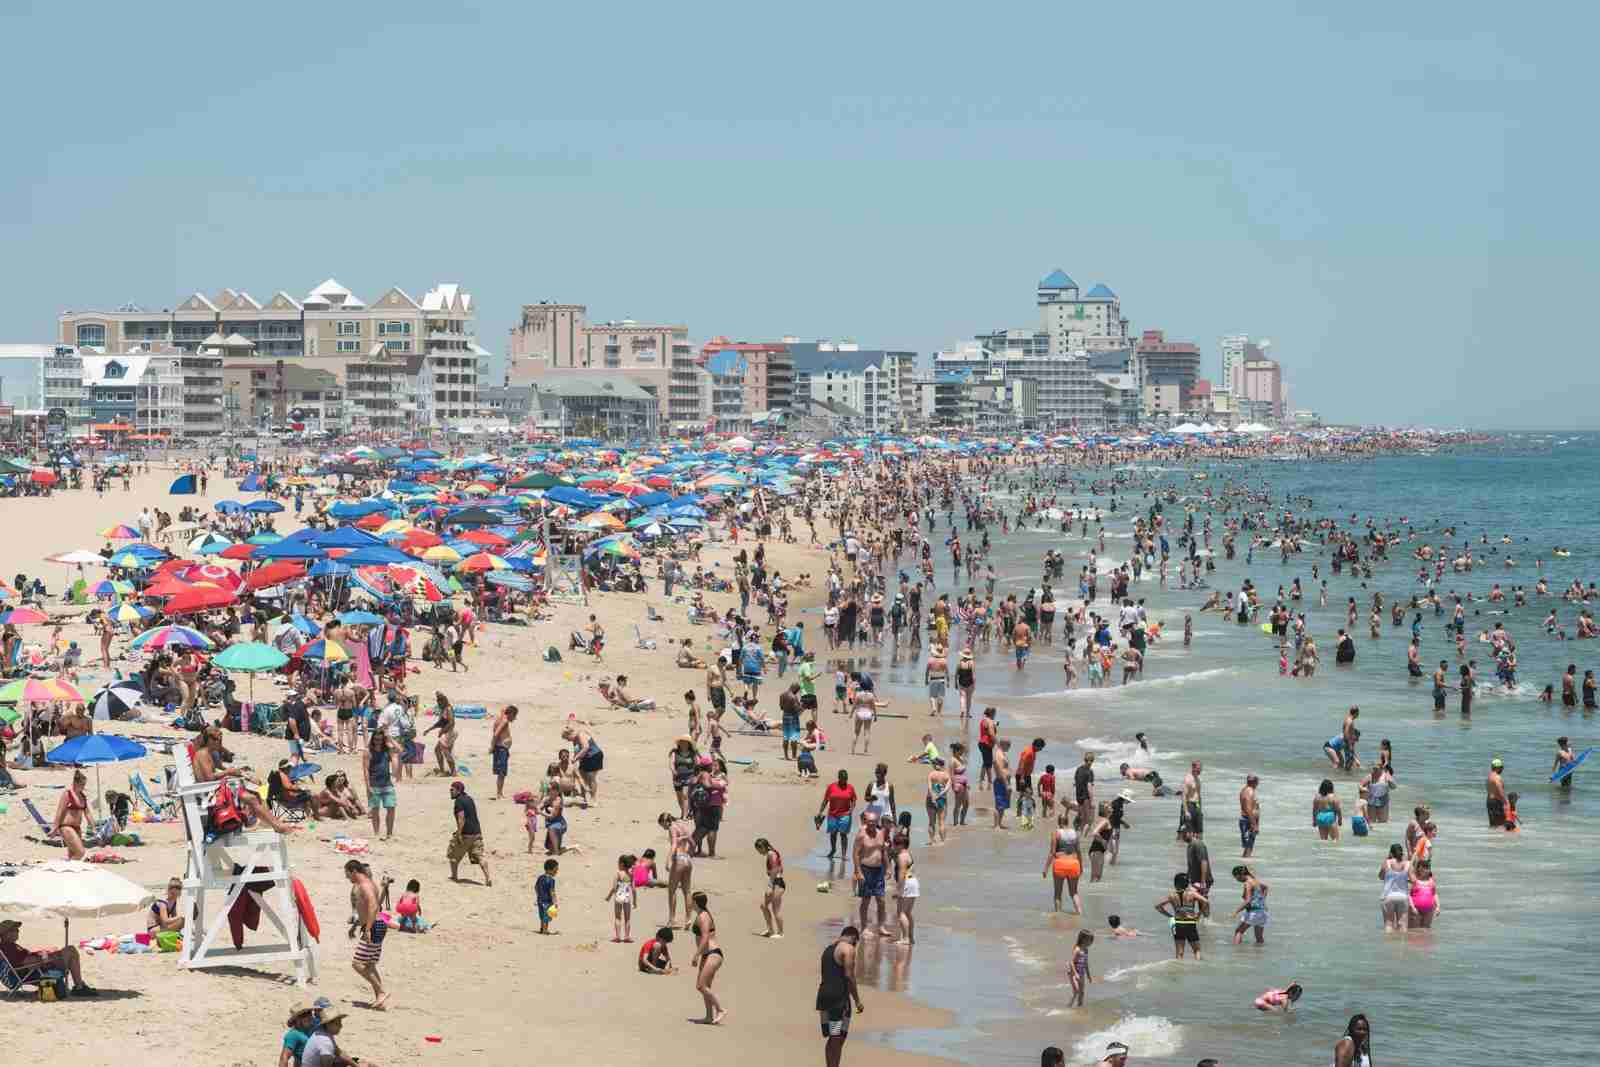 The beach at Ocean City, Maryland. (Photo via Shutterstock)